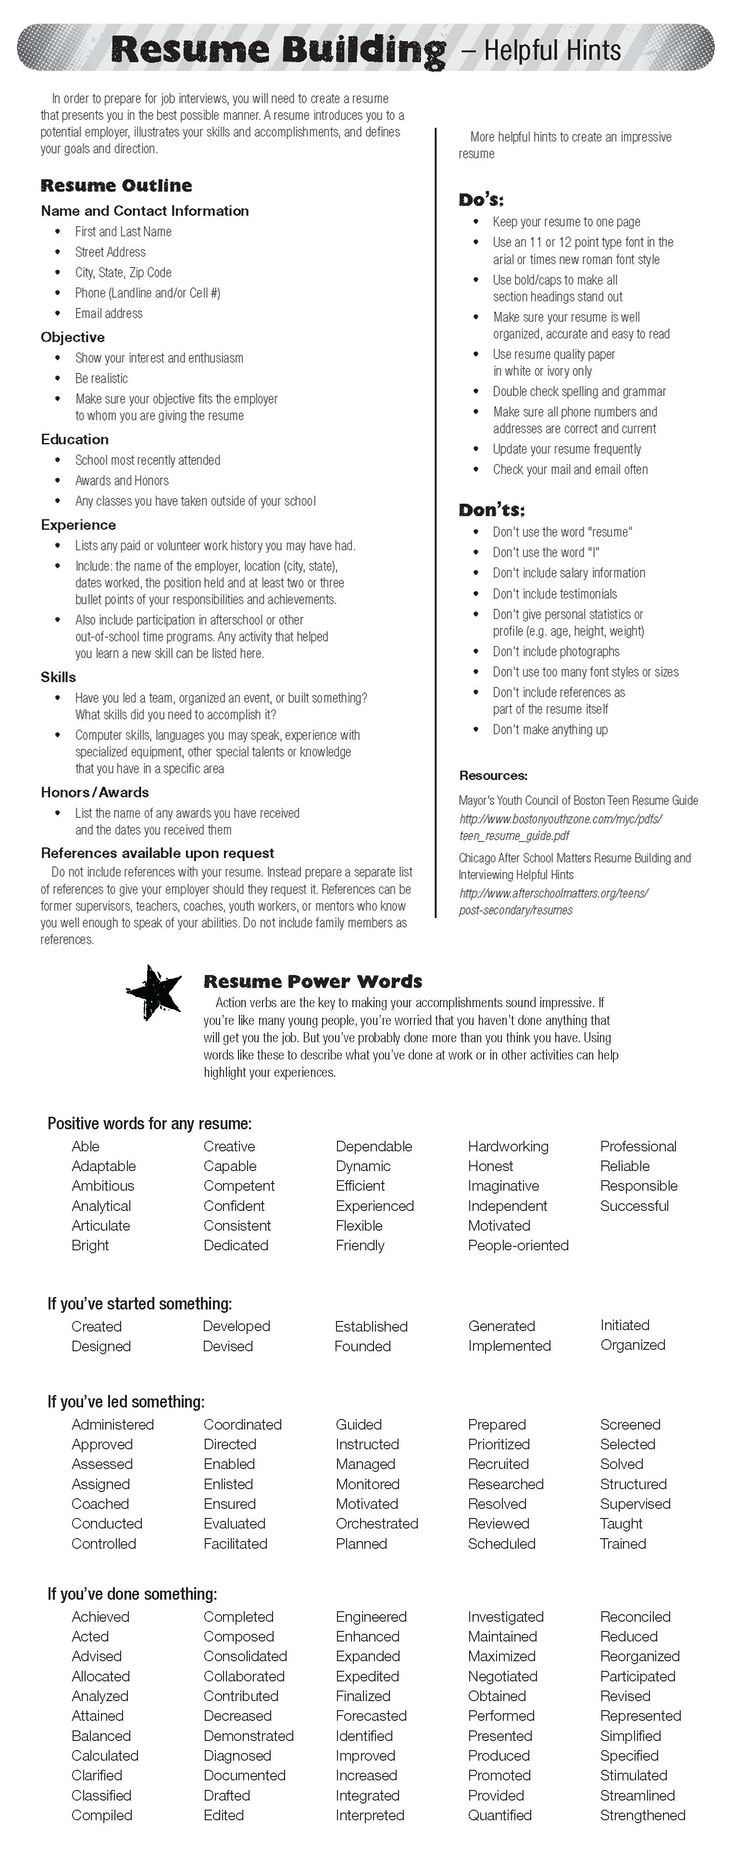 Opposenewapstandardsus  Sweet  Ideas About Resume On Pinterest  Cv Format Resume Cv And  With Remarkable  Ideas About Resume On Pinterest  Cv Format Resume Cv And Resume Templates With Delectable Cosmetology Resume Also Resume Formatting In Addition Restaurant Resume And Resume Software As Well As Product Manager Resume Additionally Spell Resume From Pinterestcom With Opposenewapstandardsus  Remarkable  Ideas About Resume On Pinterest  Cv Format Resume Cv And  With Delectable  Ideas About Resume On Pinterest  Cv Format Resume Cv And Resume Templates And Sweet Cosmetology Resume Also Resume Formatting In Addition Restaurant Resume From Pinterestcom